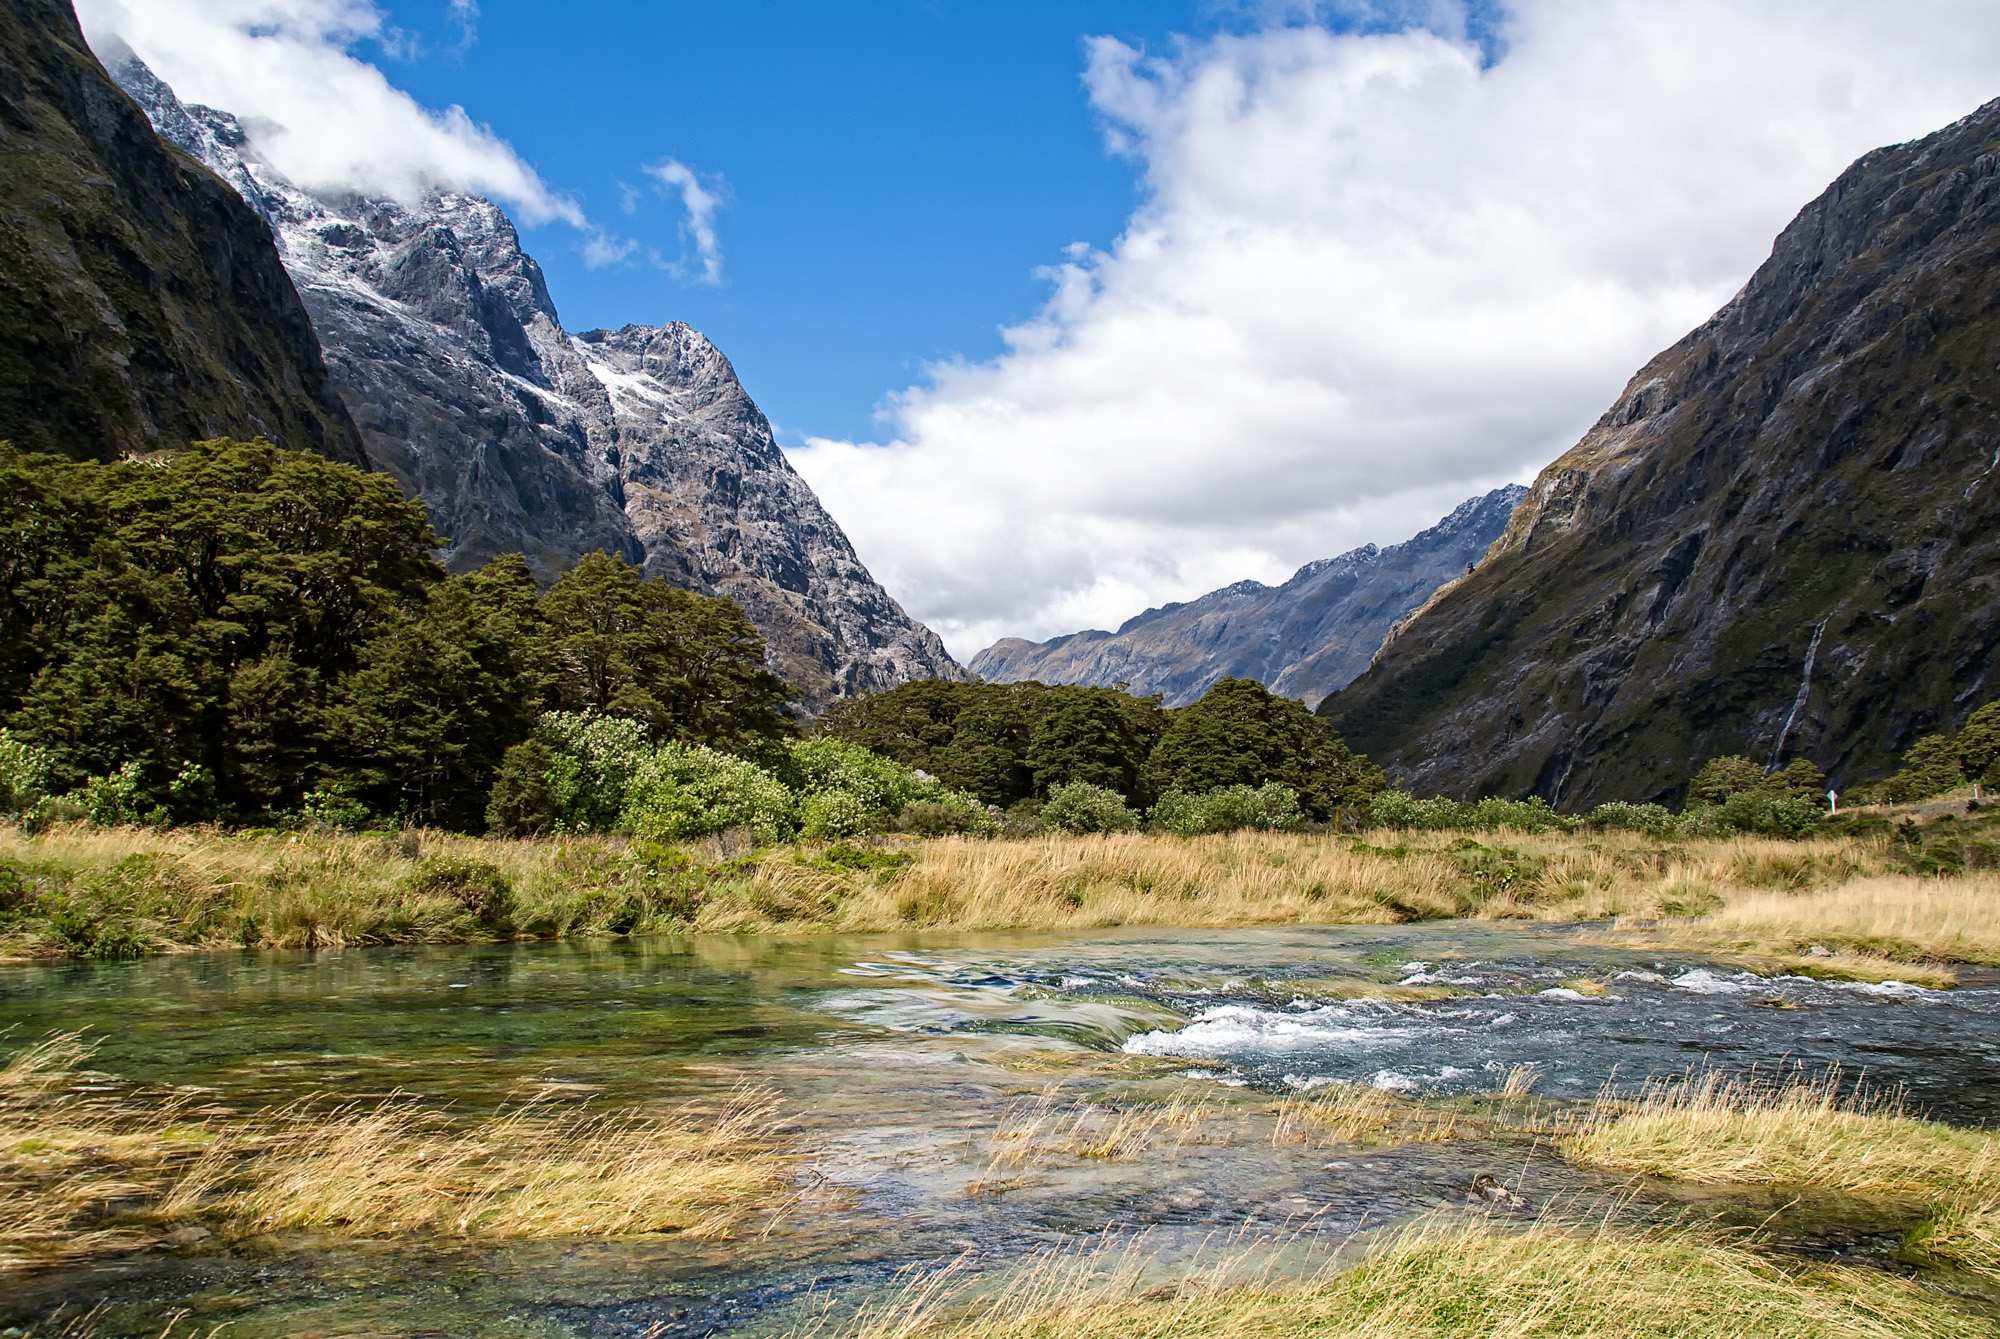 Rai Valley New Zealand  city photos gallery : Hollyford Valley, Fiordland, New Zealand, Copyright Chris Gregory 2013